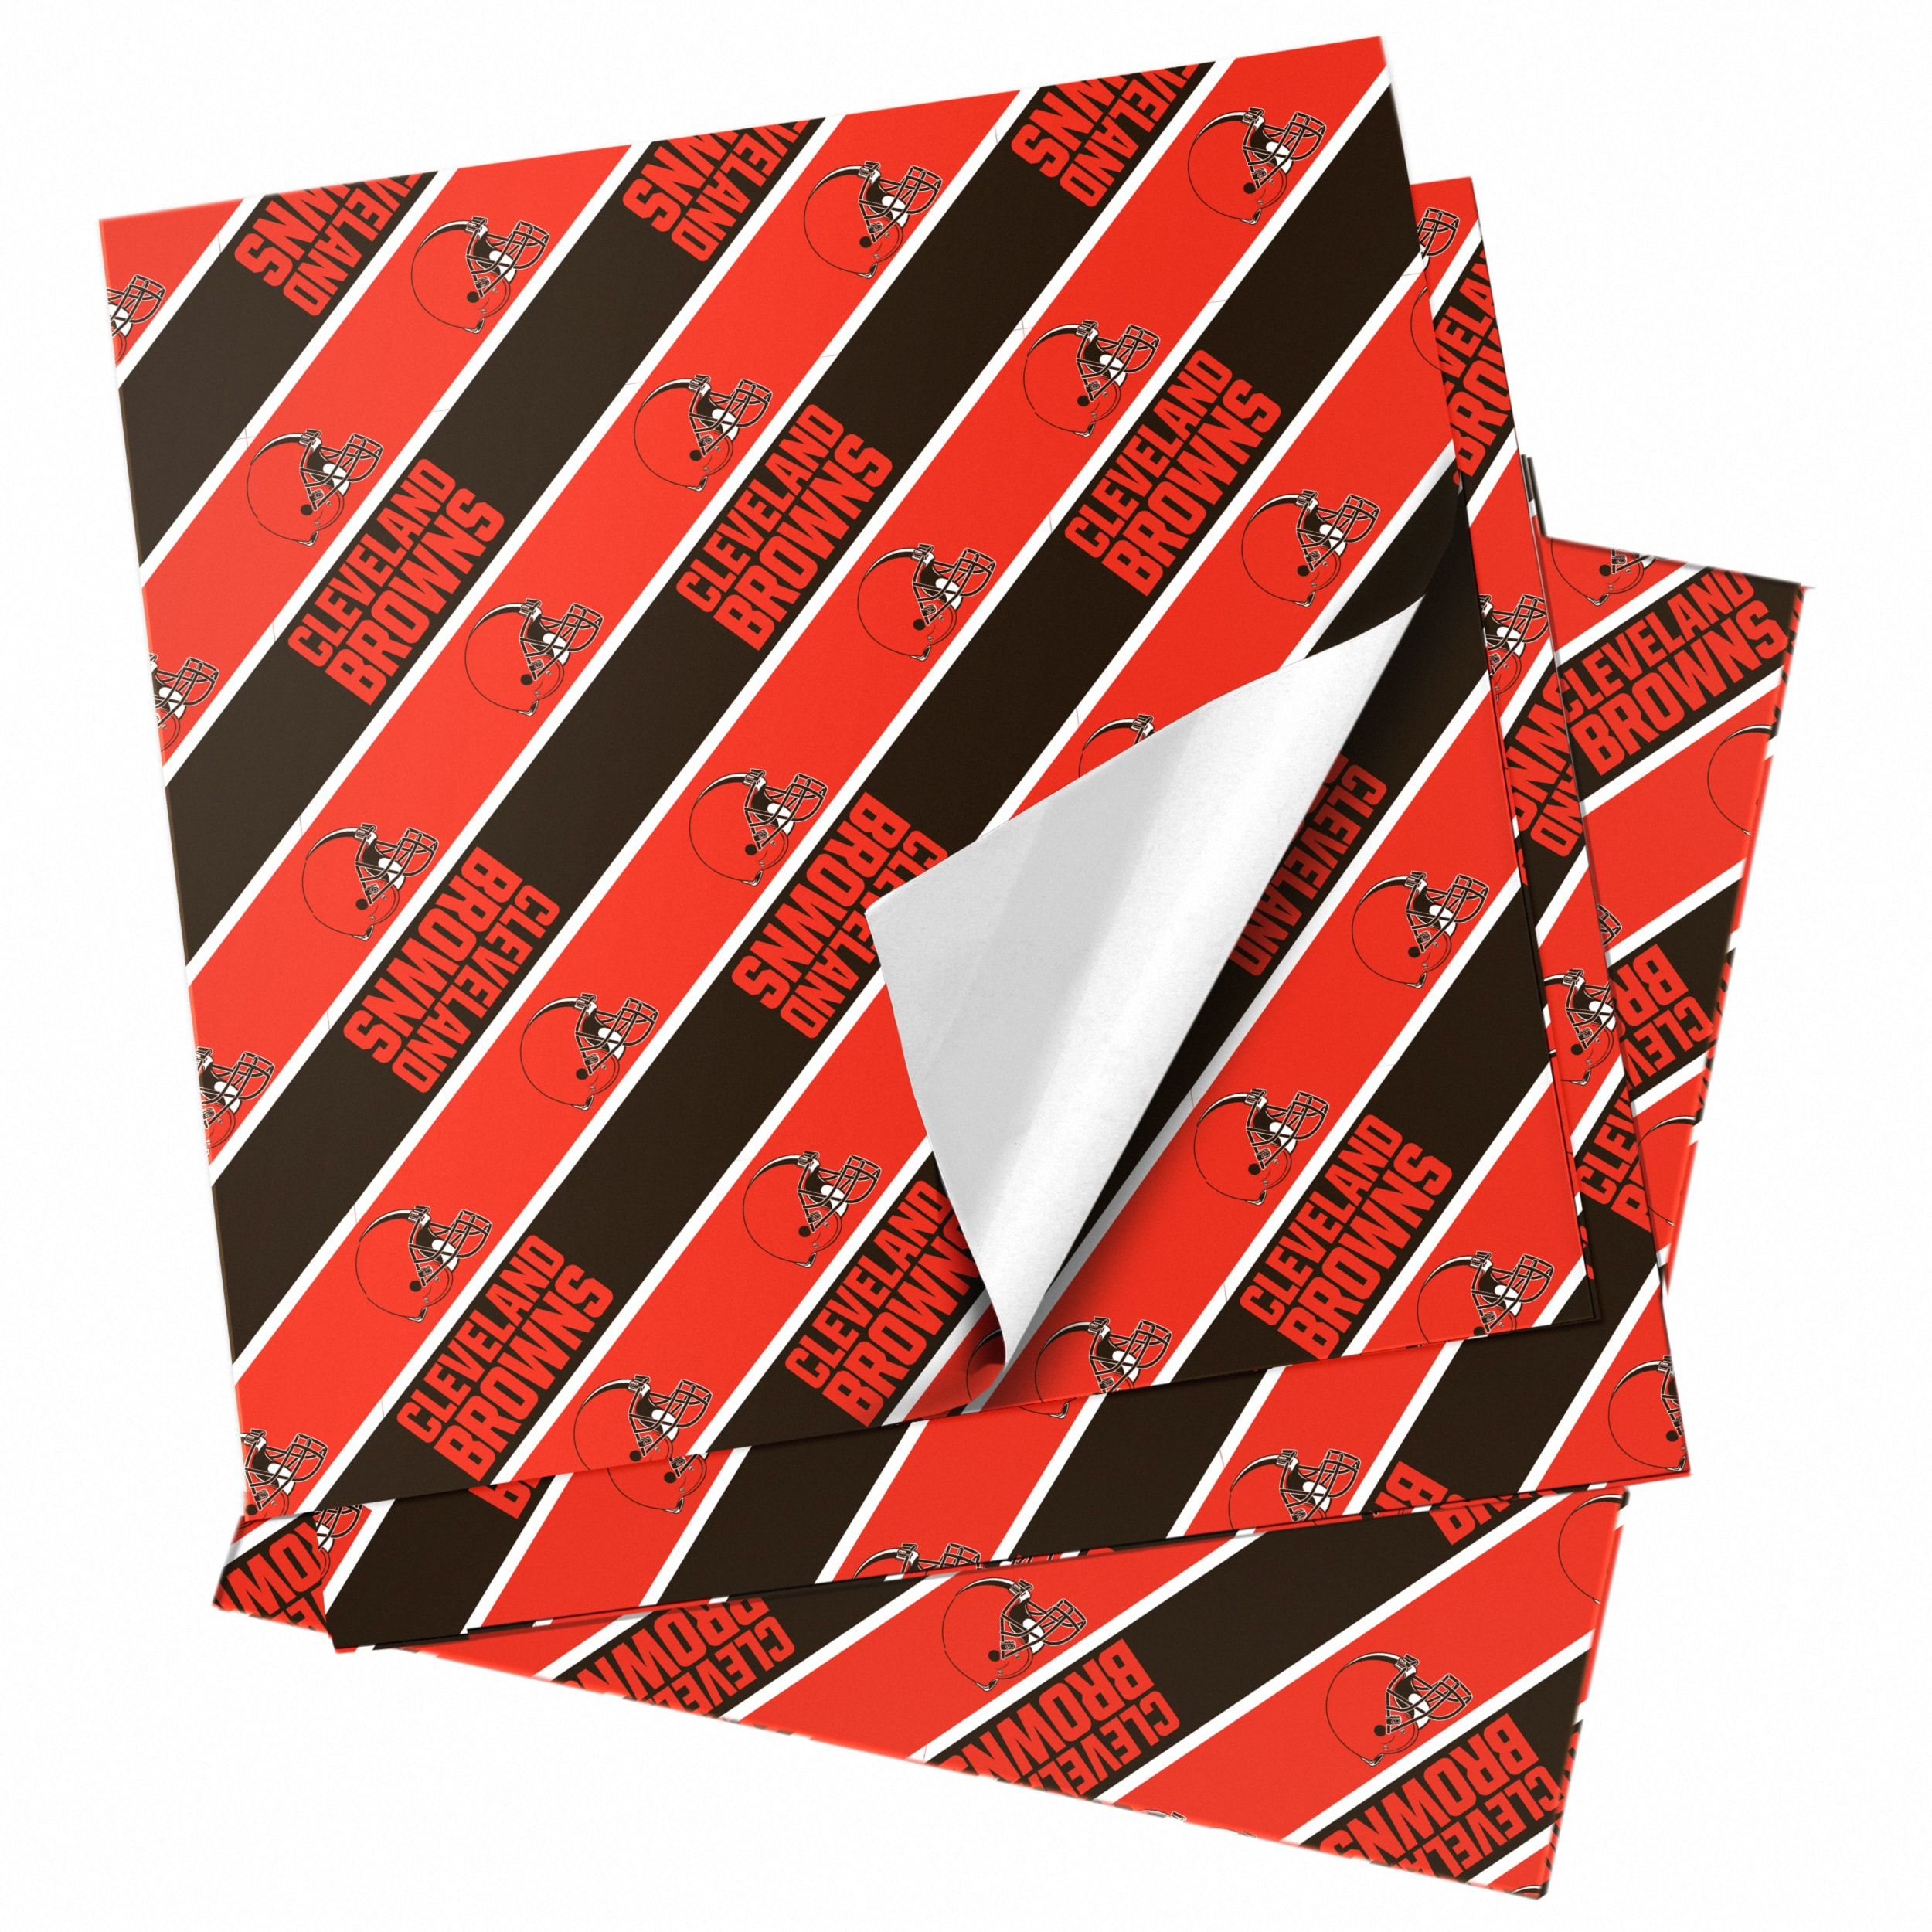 "Cleveland Browns 20"" x 30"" Wrapping Paper"